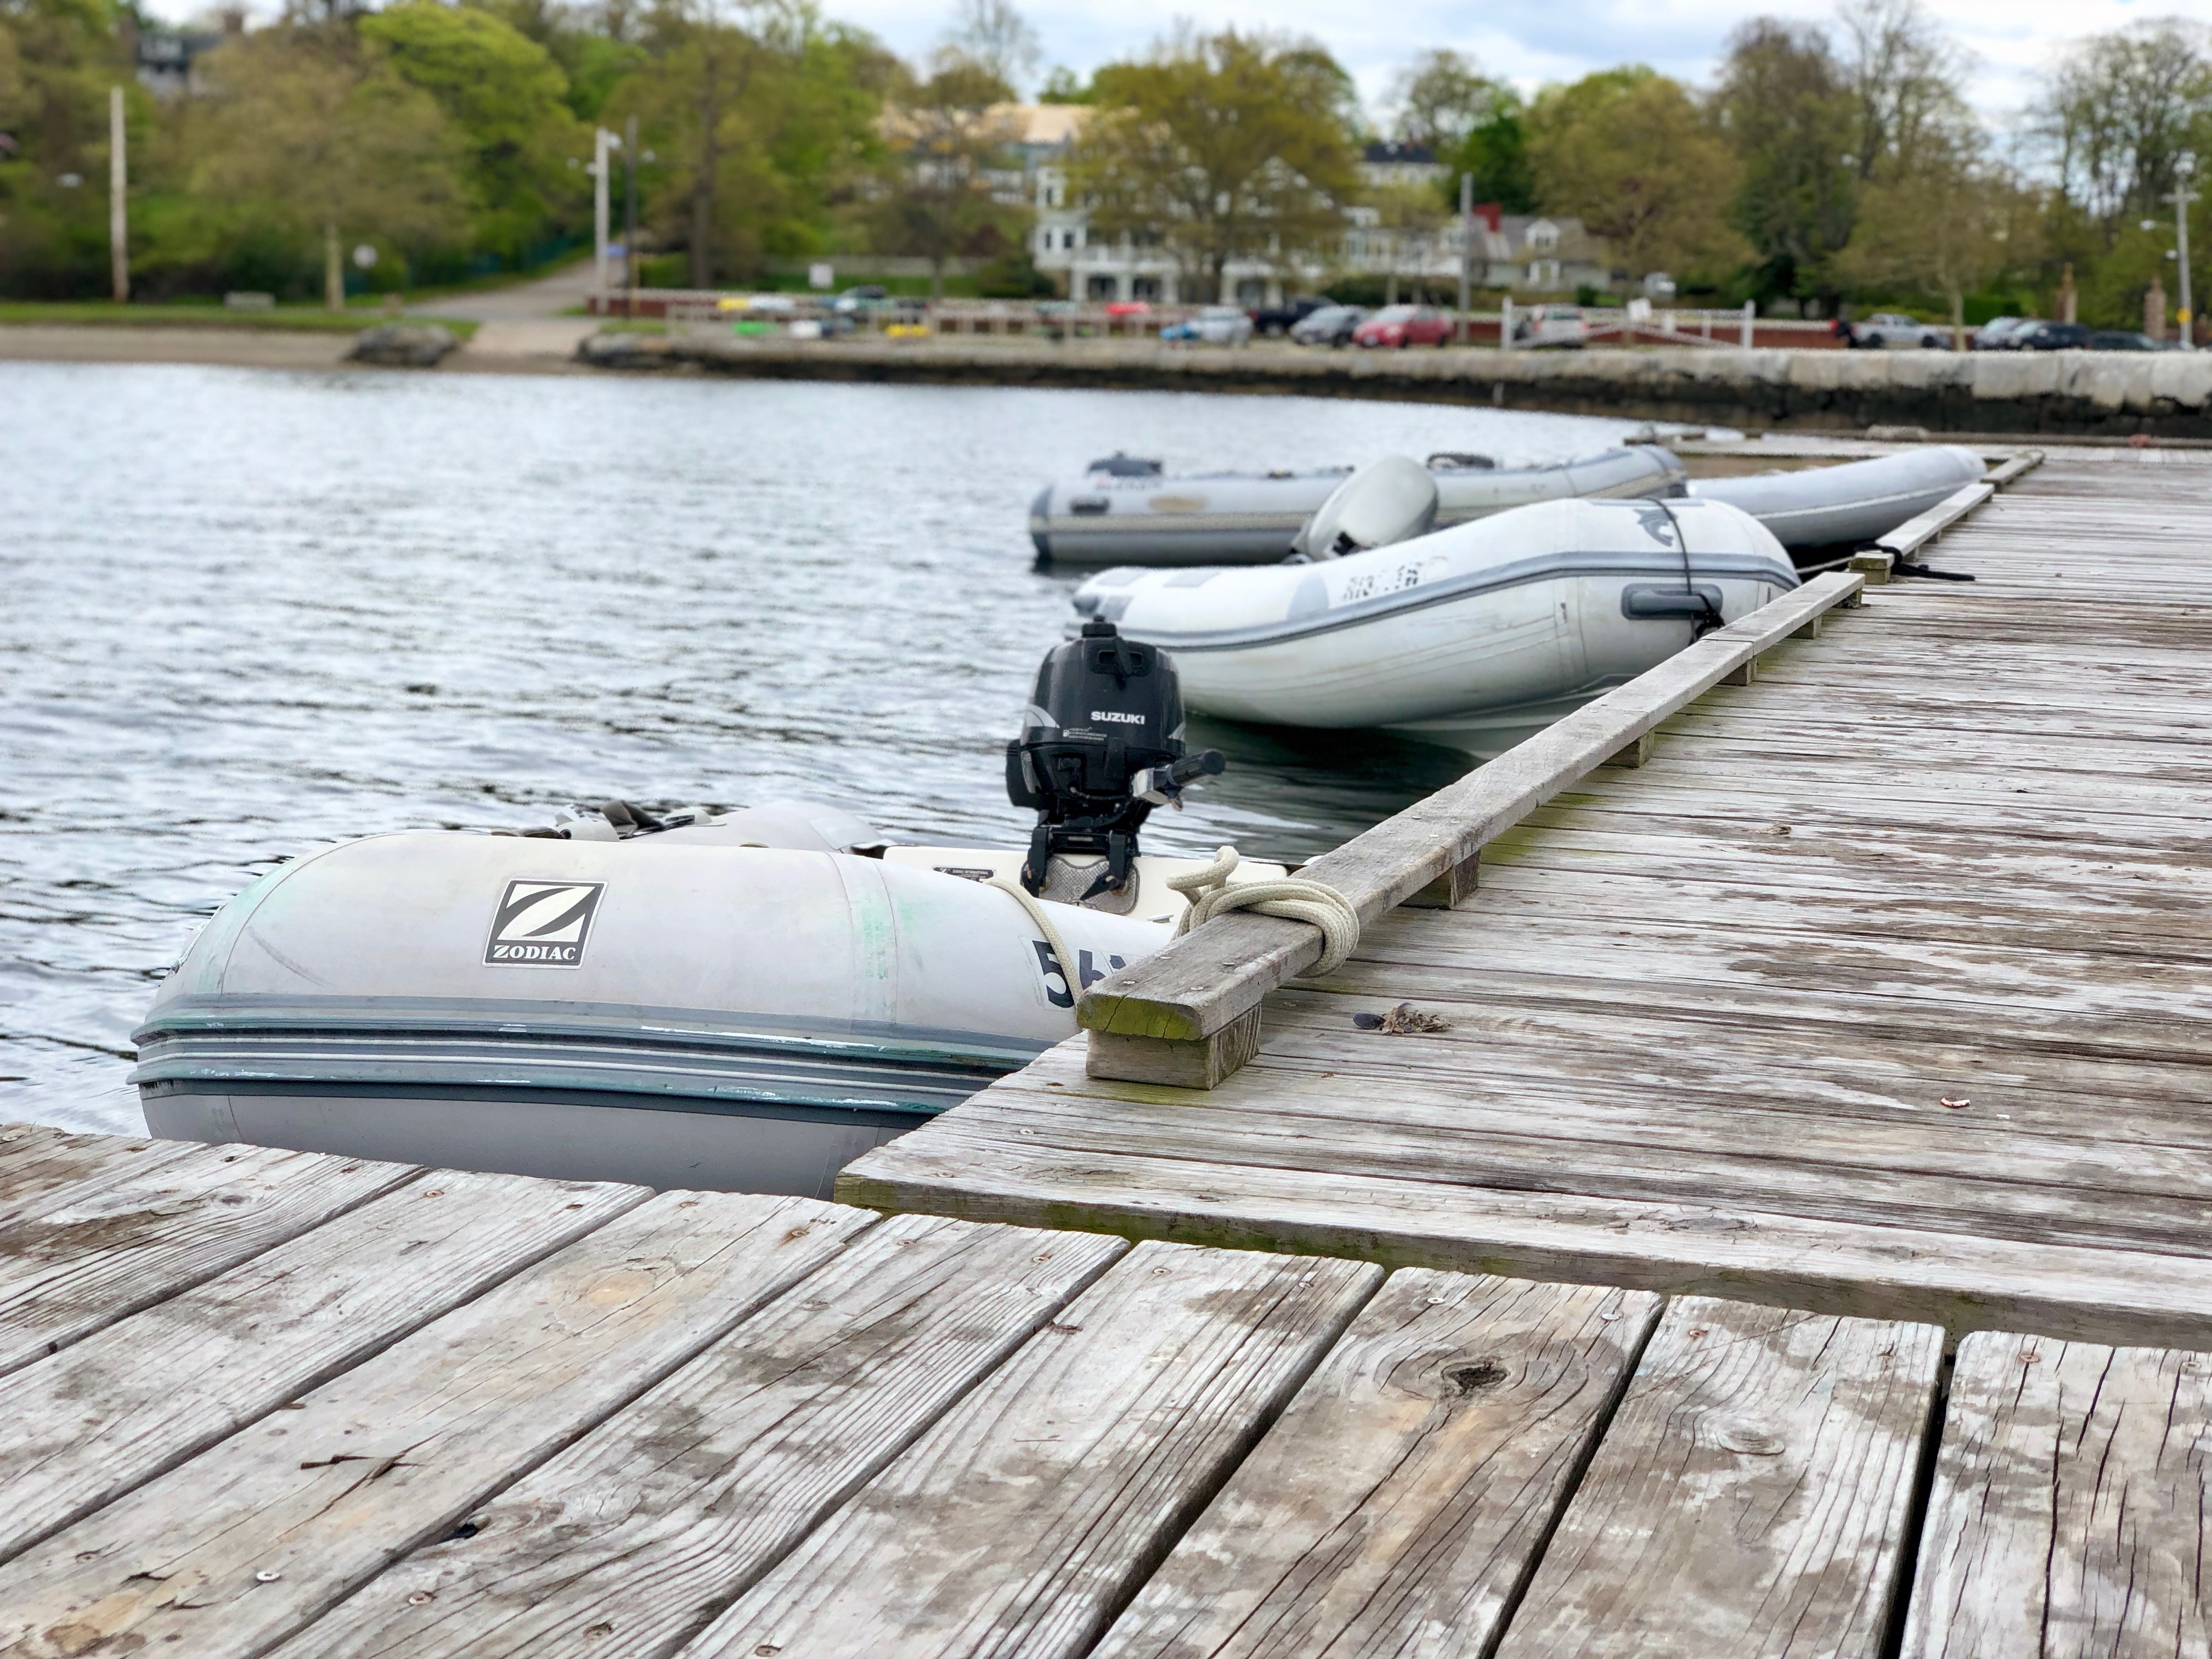 New Program Aims to Cut Down on Overcrowded Dinghy Docks